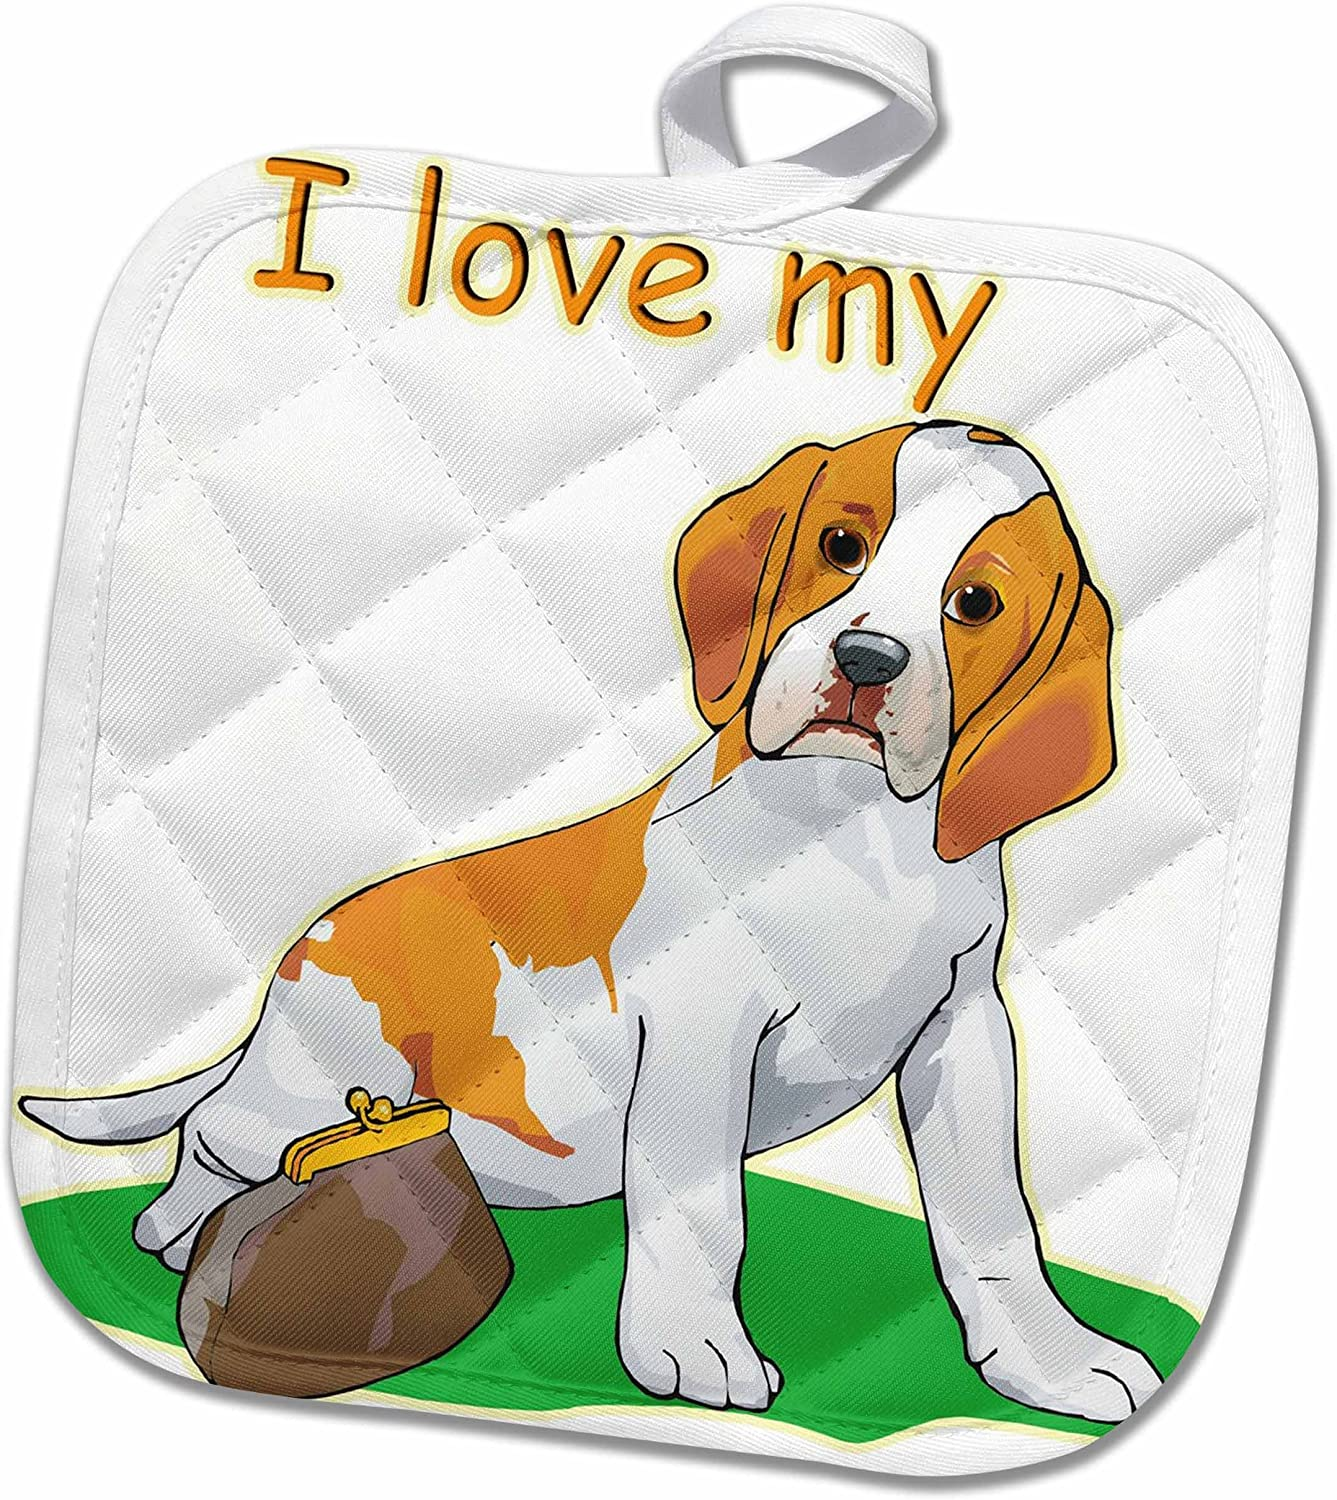 3d Rose Cute And Cuddly Canine I Love My Black Border Colle Pot Holder 8 X 8 Home Kitchen